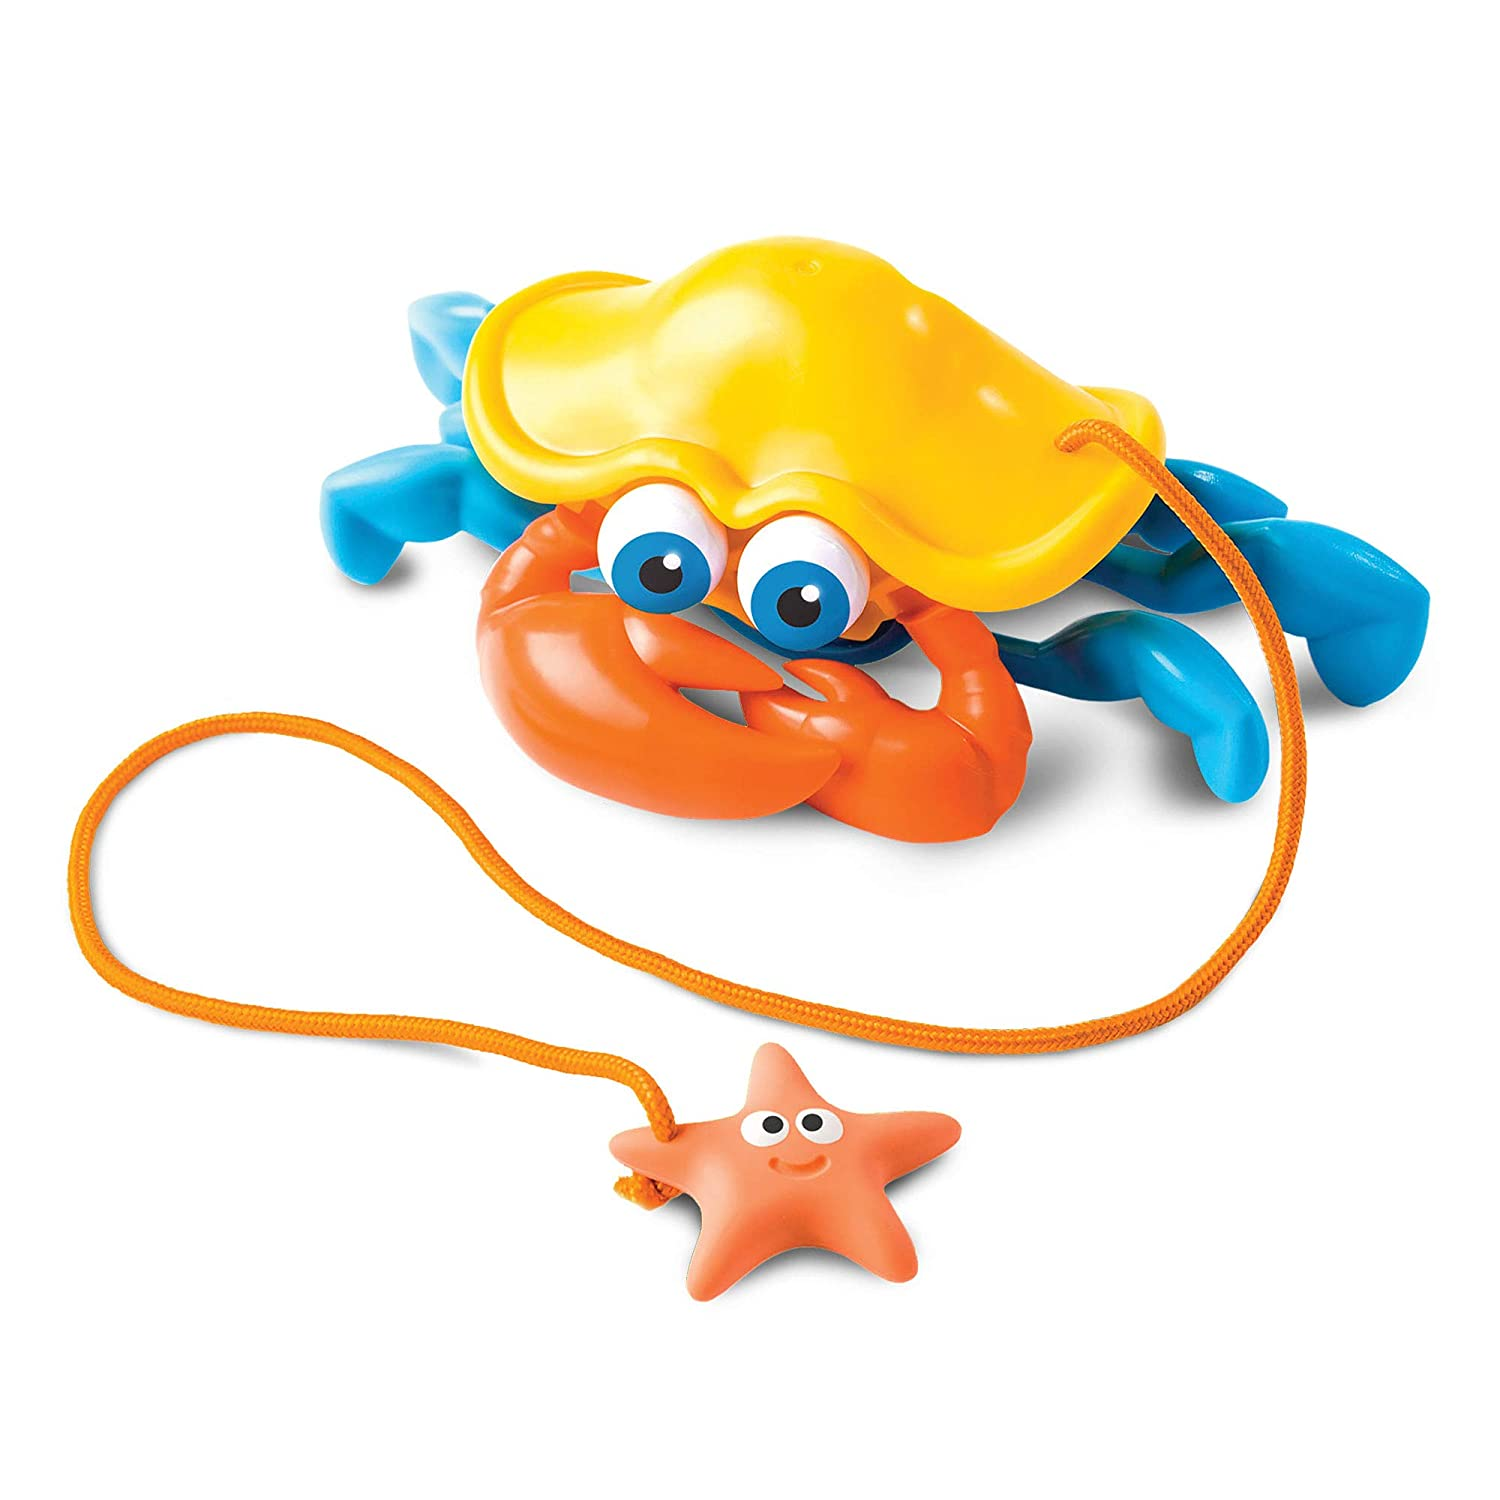 Fat Brain Toys Pull Along Pals - Crabby Fat Brain Toy Co. FA175-1